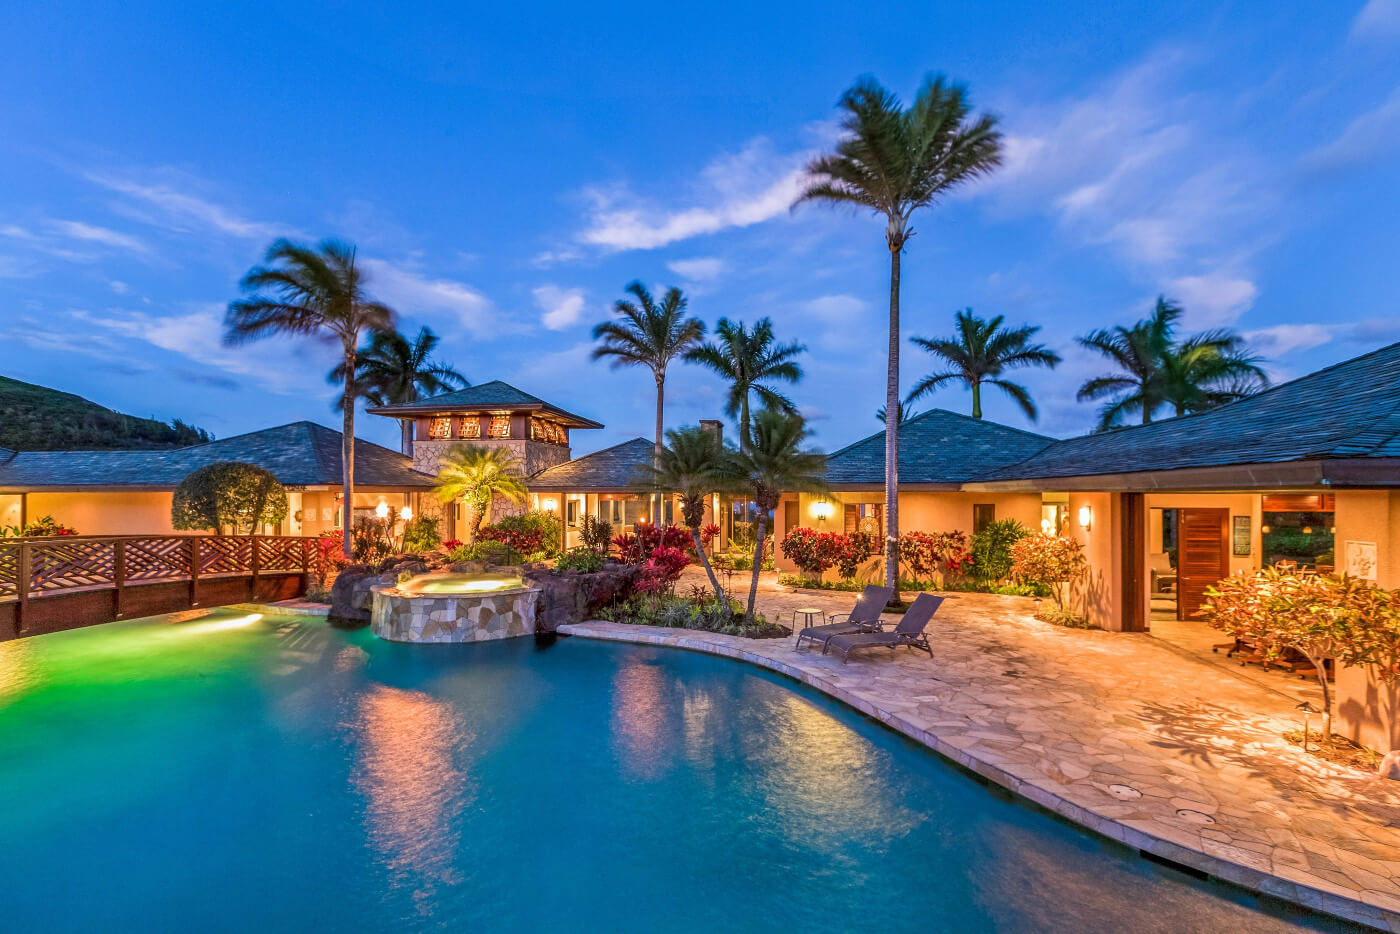 Kauai, HI – Luxury $10 Million Fractional For Sale